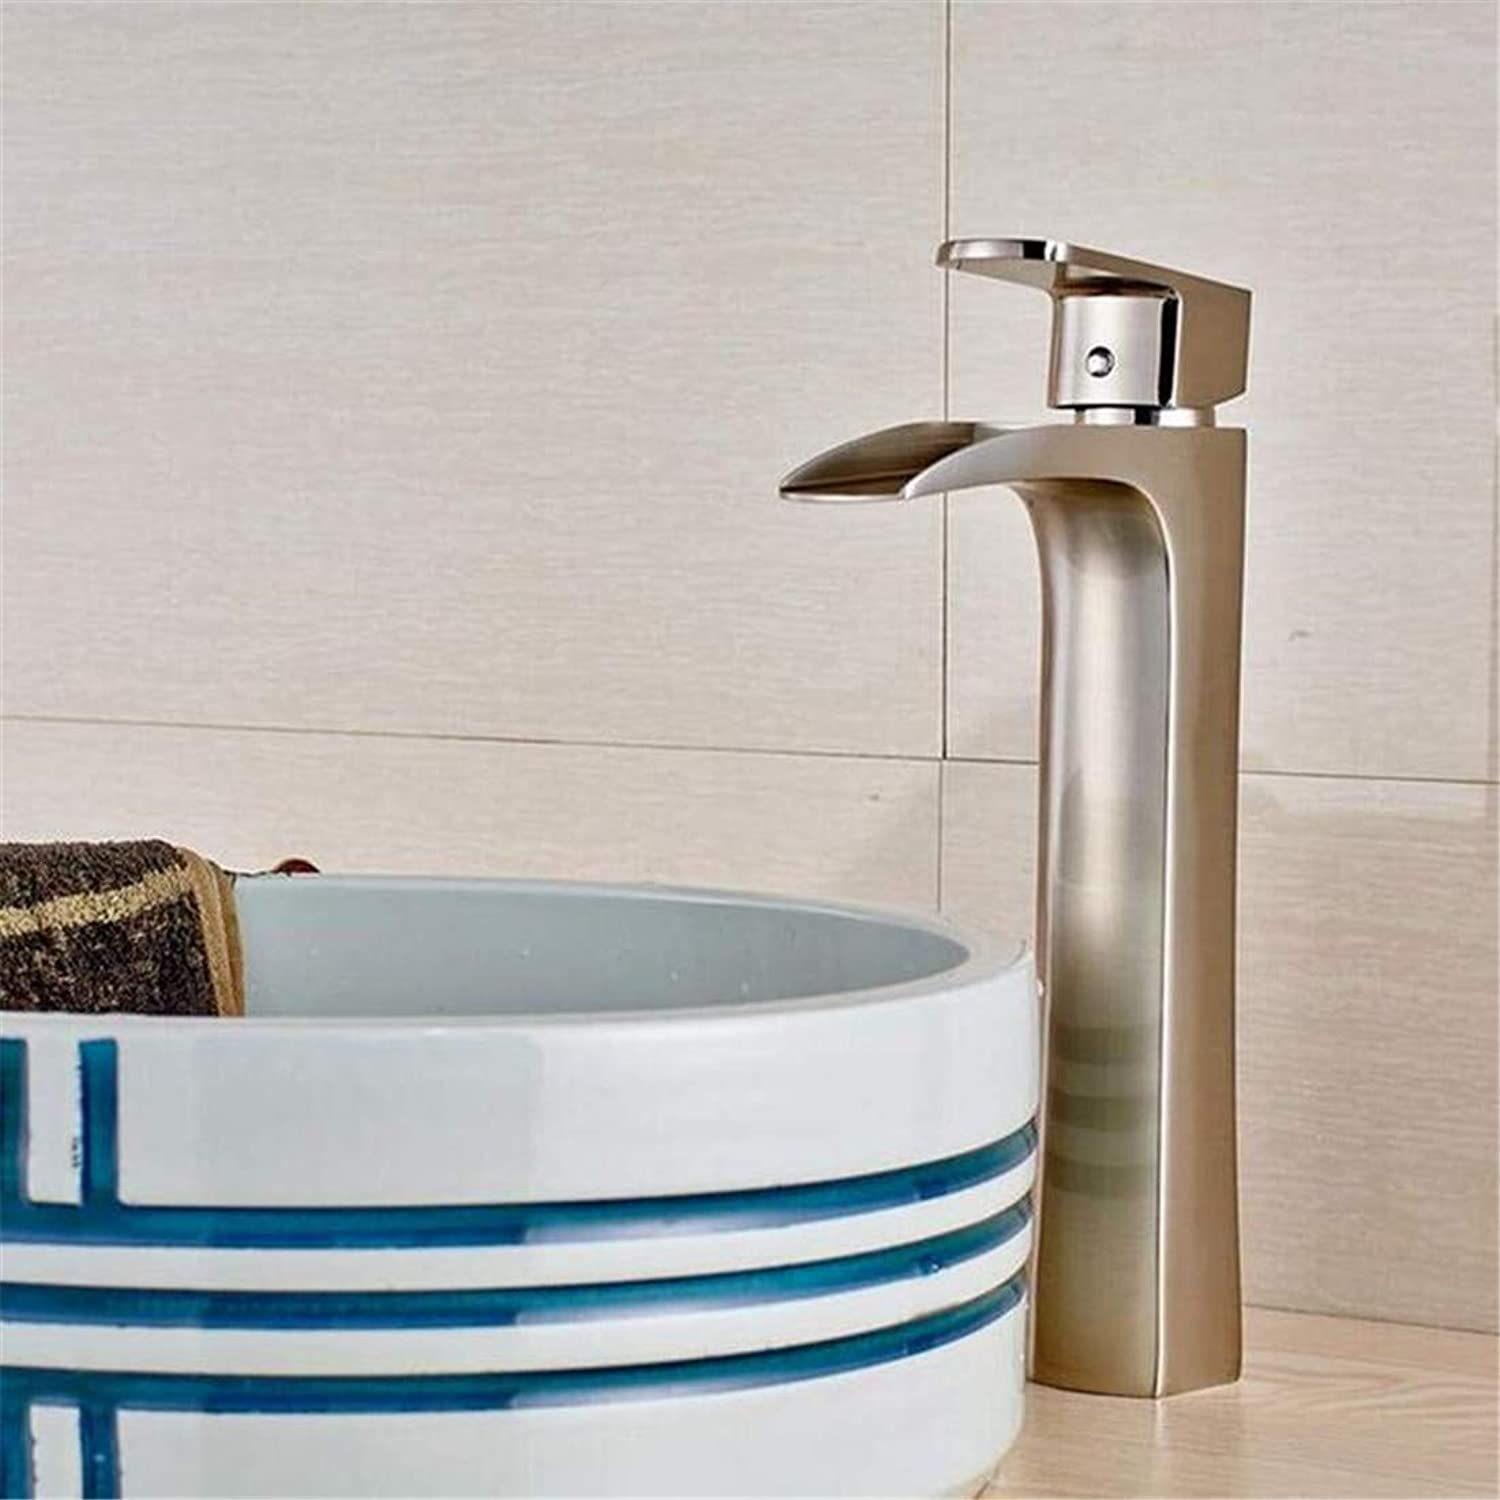 Faucet Modern Plated Kitchen Bathroom Faucet Basin Faucet Sink Faucet Deck Mounted Countertop Washbasin Hot and Cold Taps